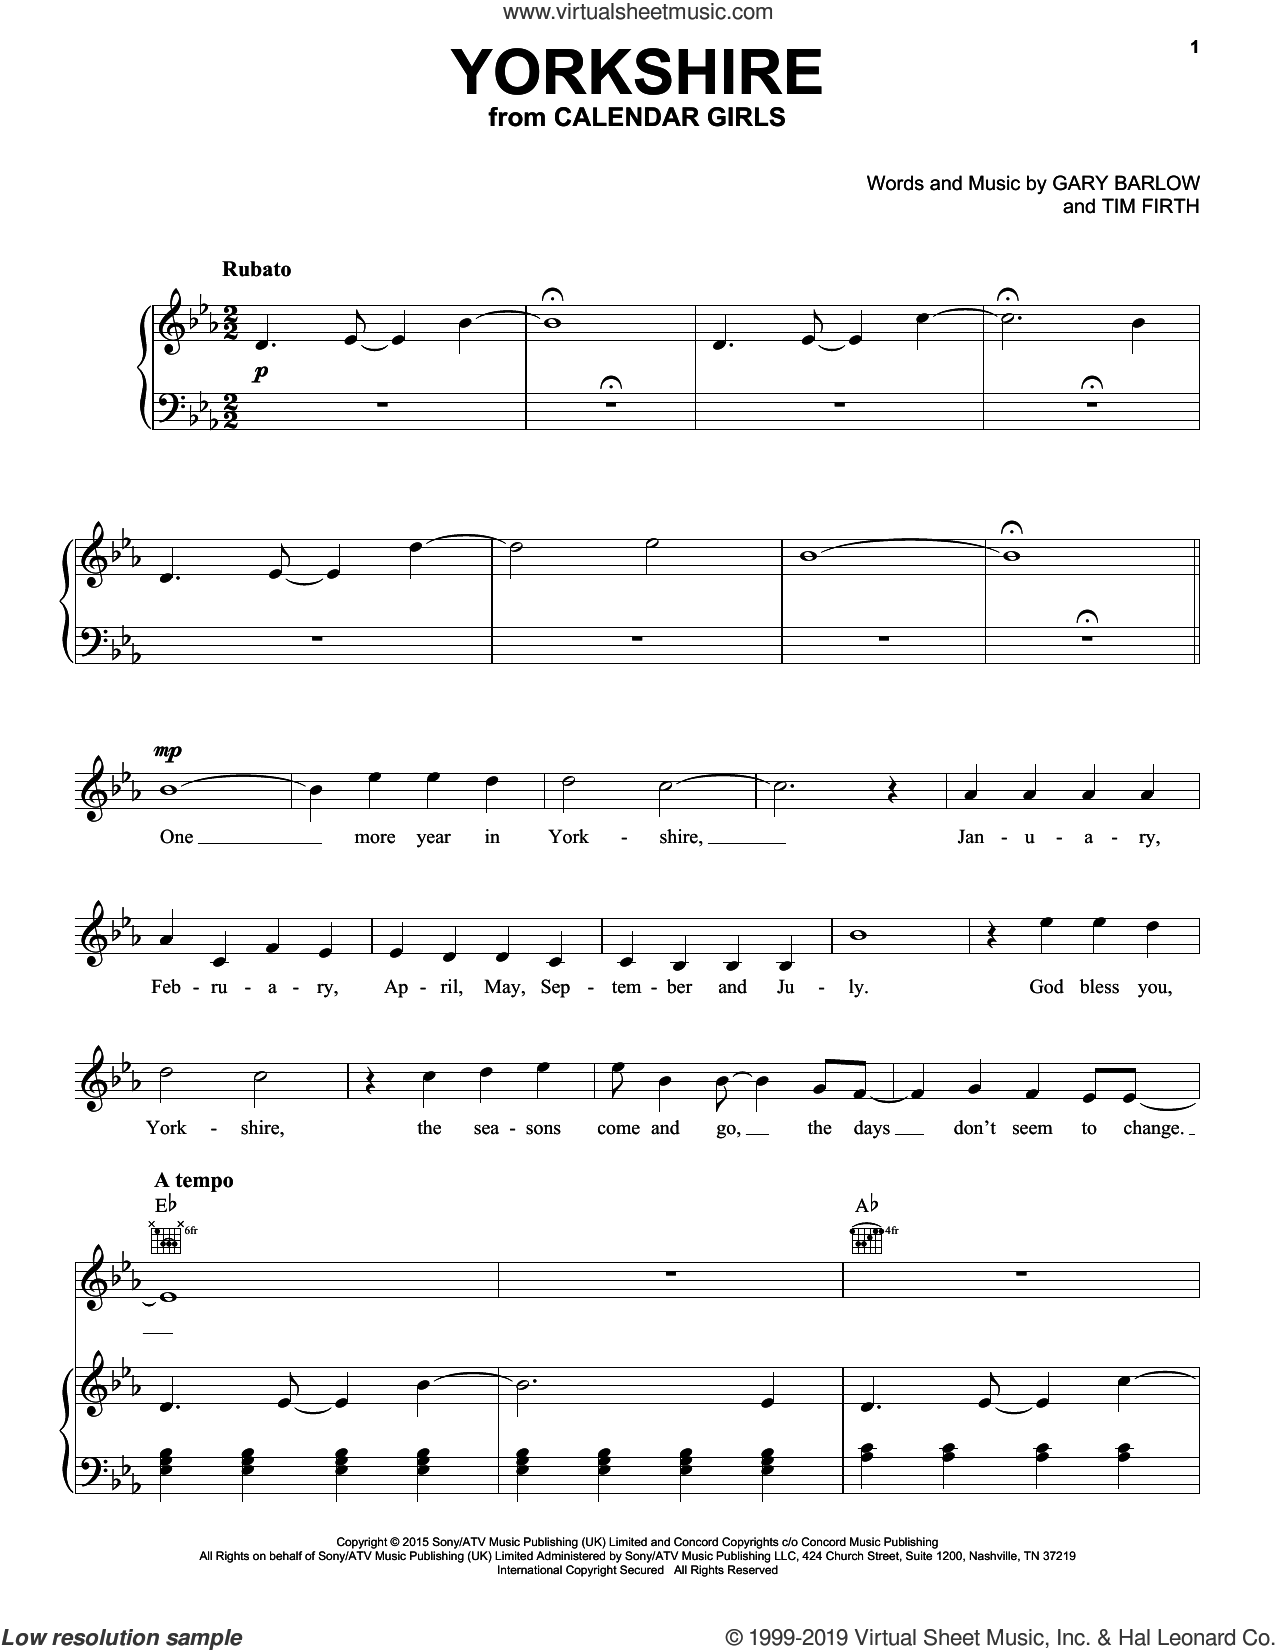 Yorkshire (from Calendar Girls the Musical) sheet music for voice, piano or guitar by Gary Barlow, Gary Barlow and Tim Firth and Tim Firth, intermediate skill level